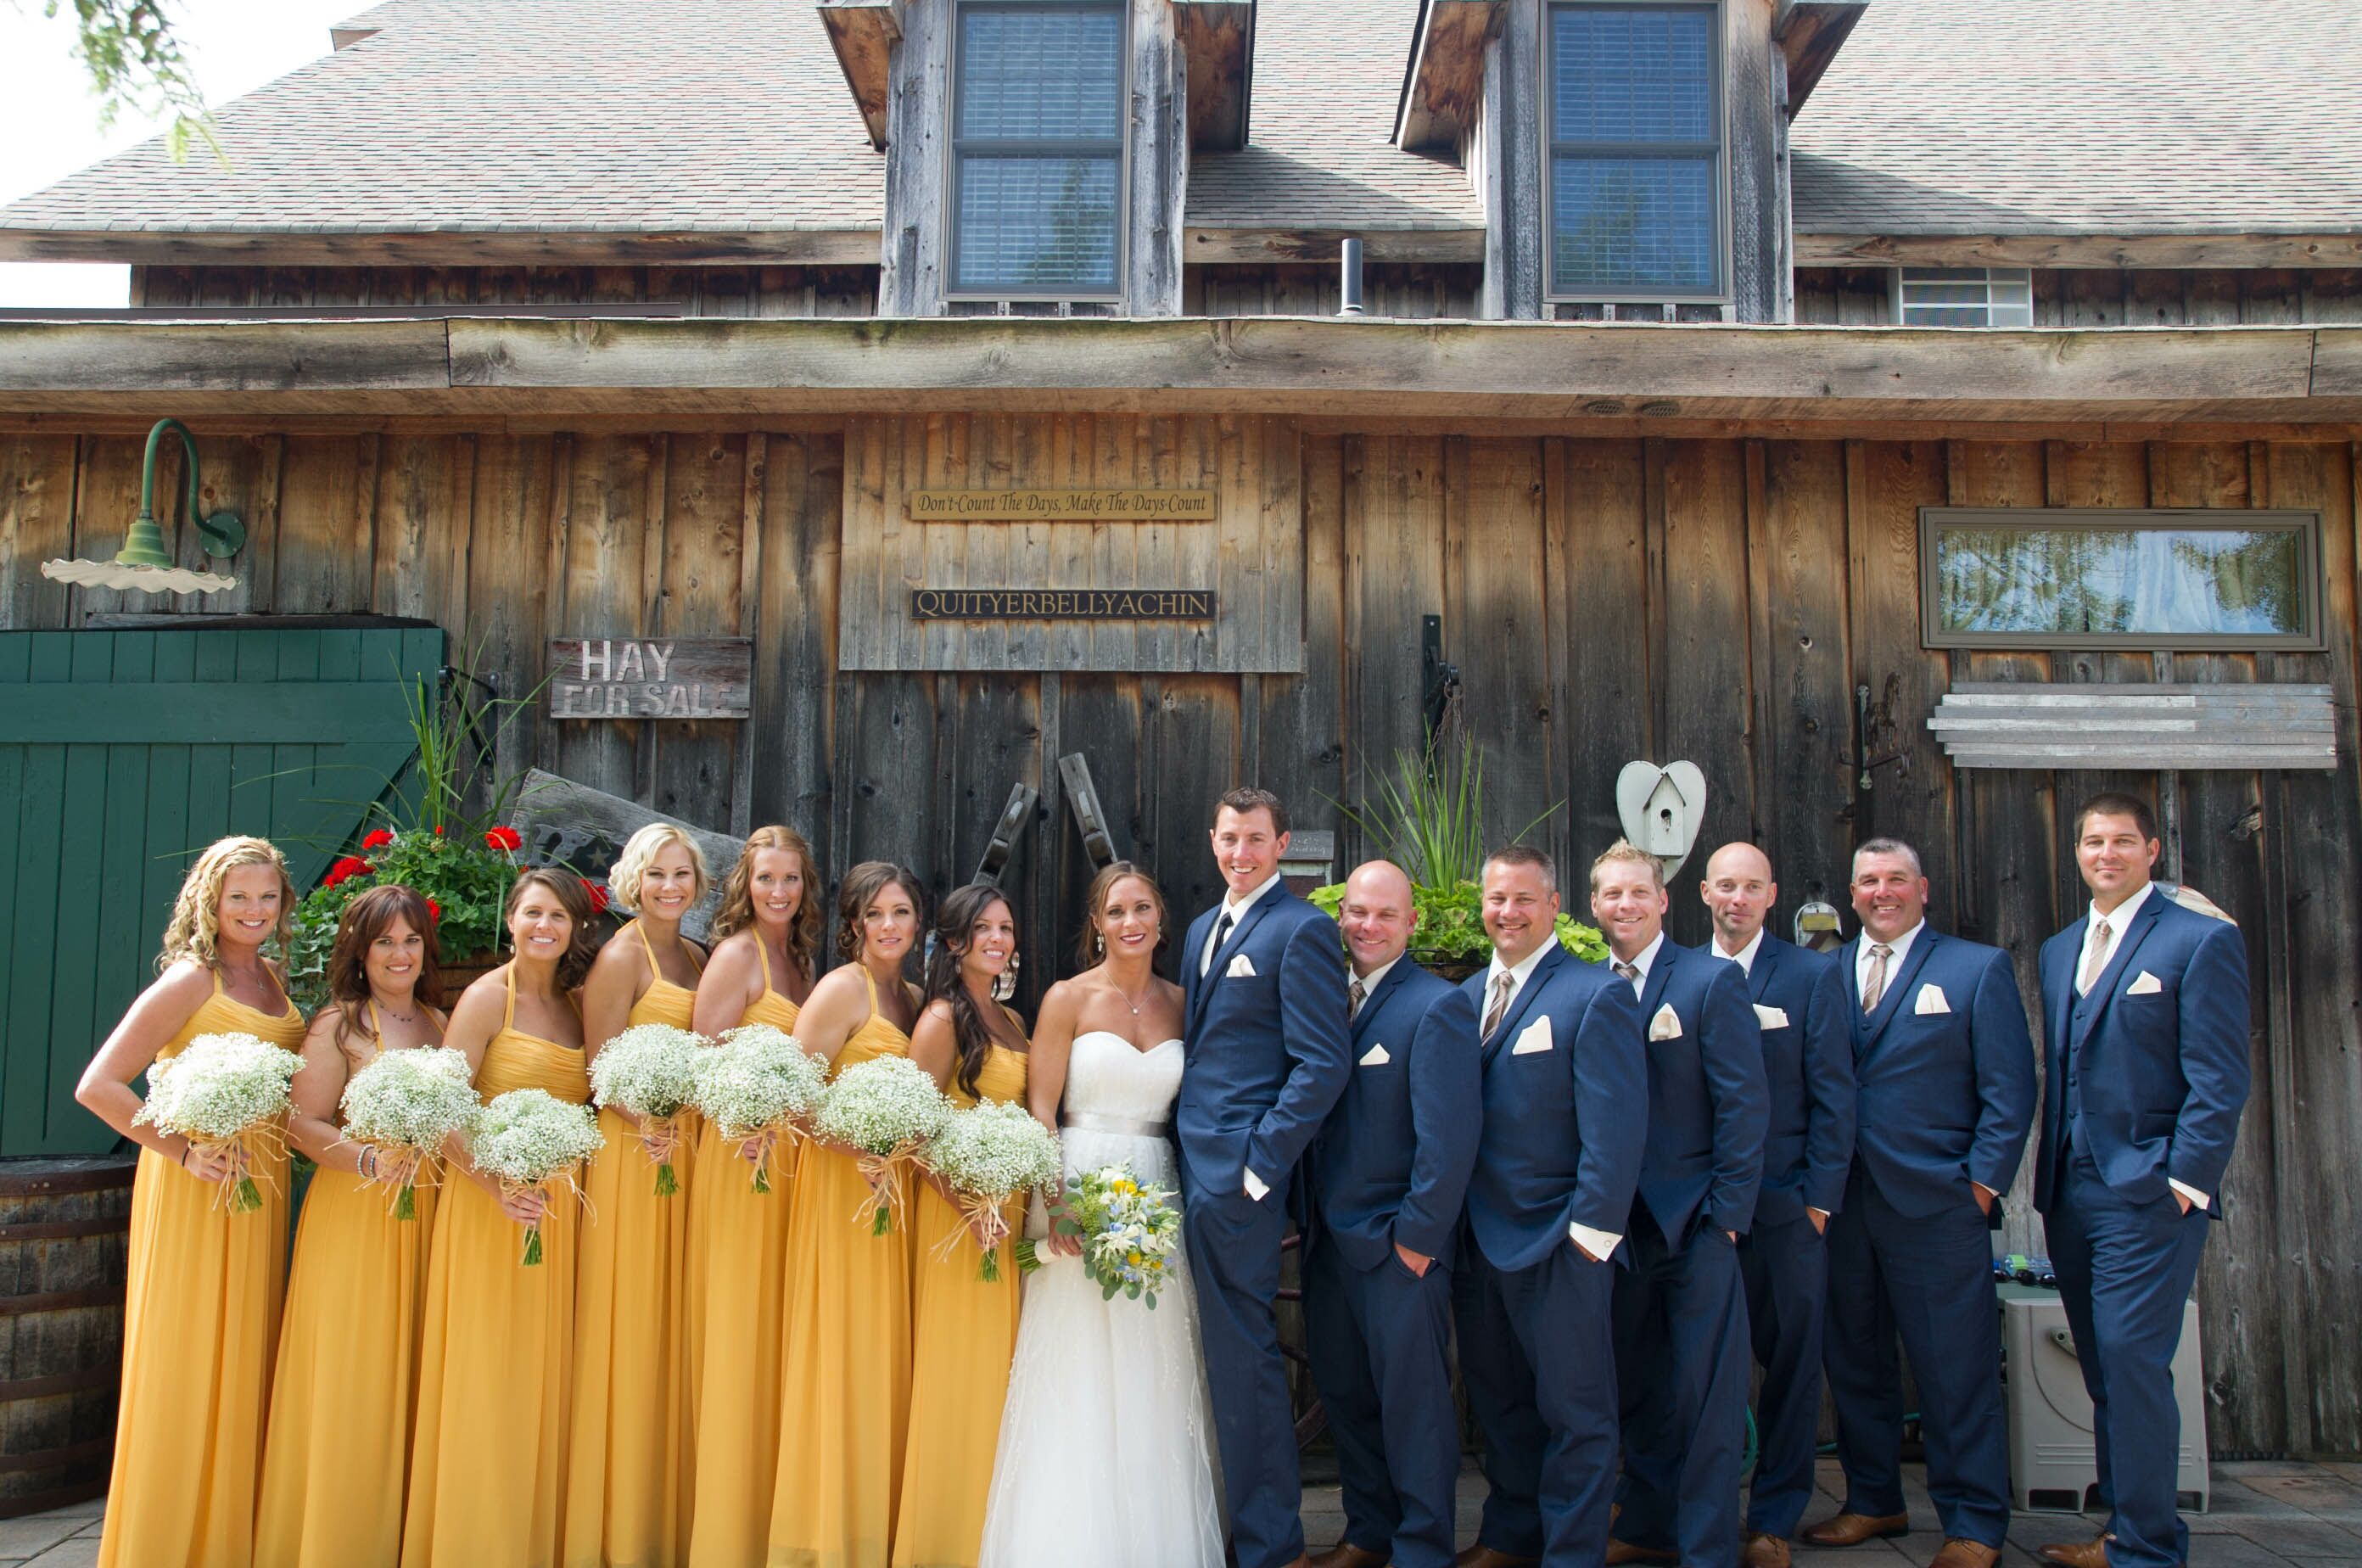 Wedding Party in Yellow and Navy Blue